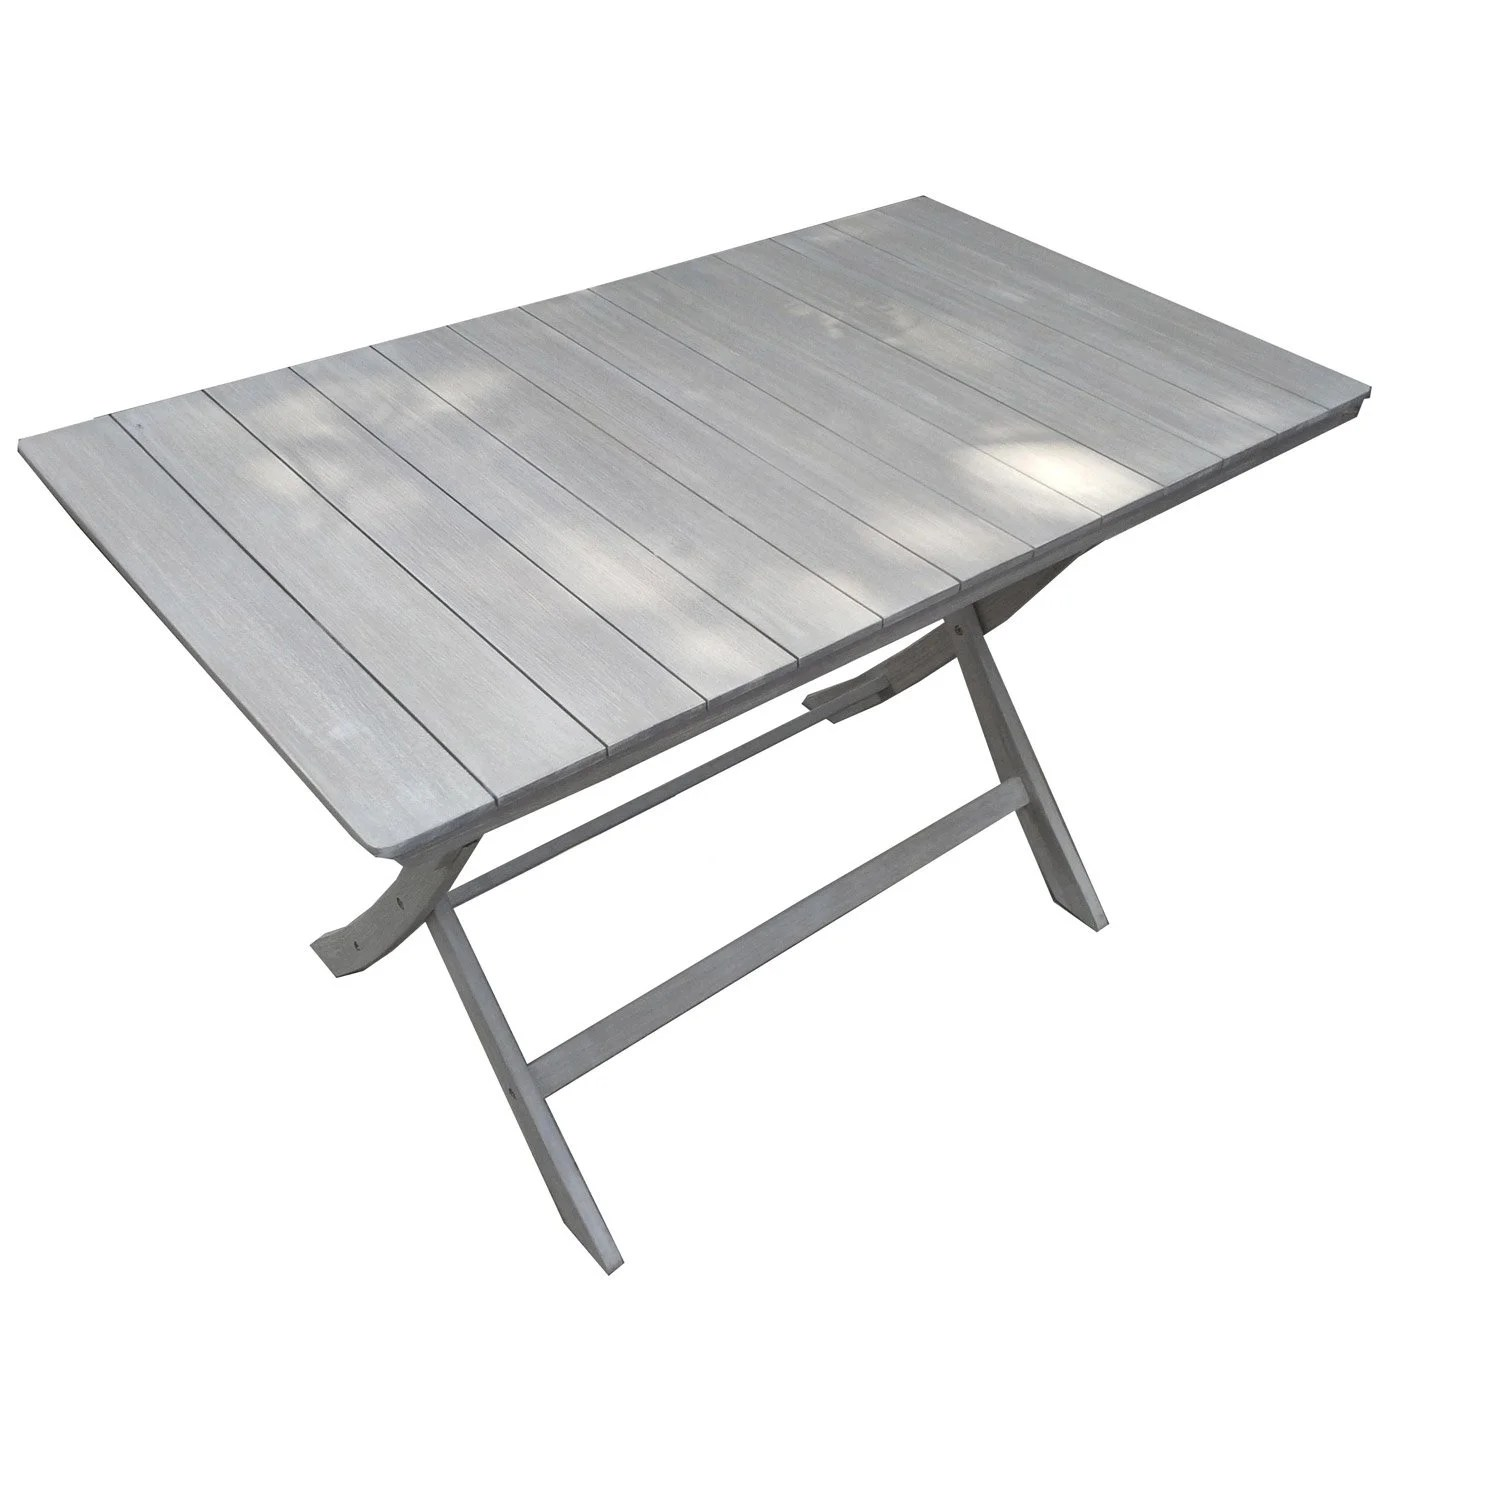 Leroy Merlin Table De Jardin Table De Jardin Naterial Portofino Rectangulaire Gris 4